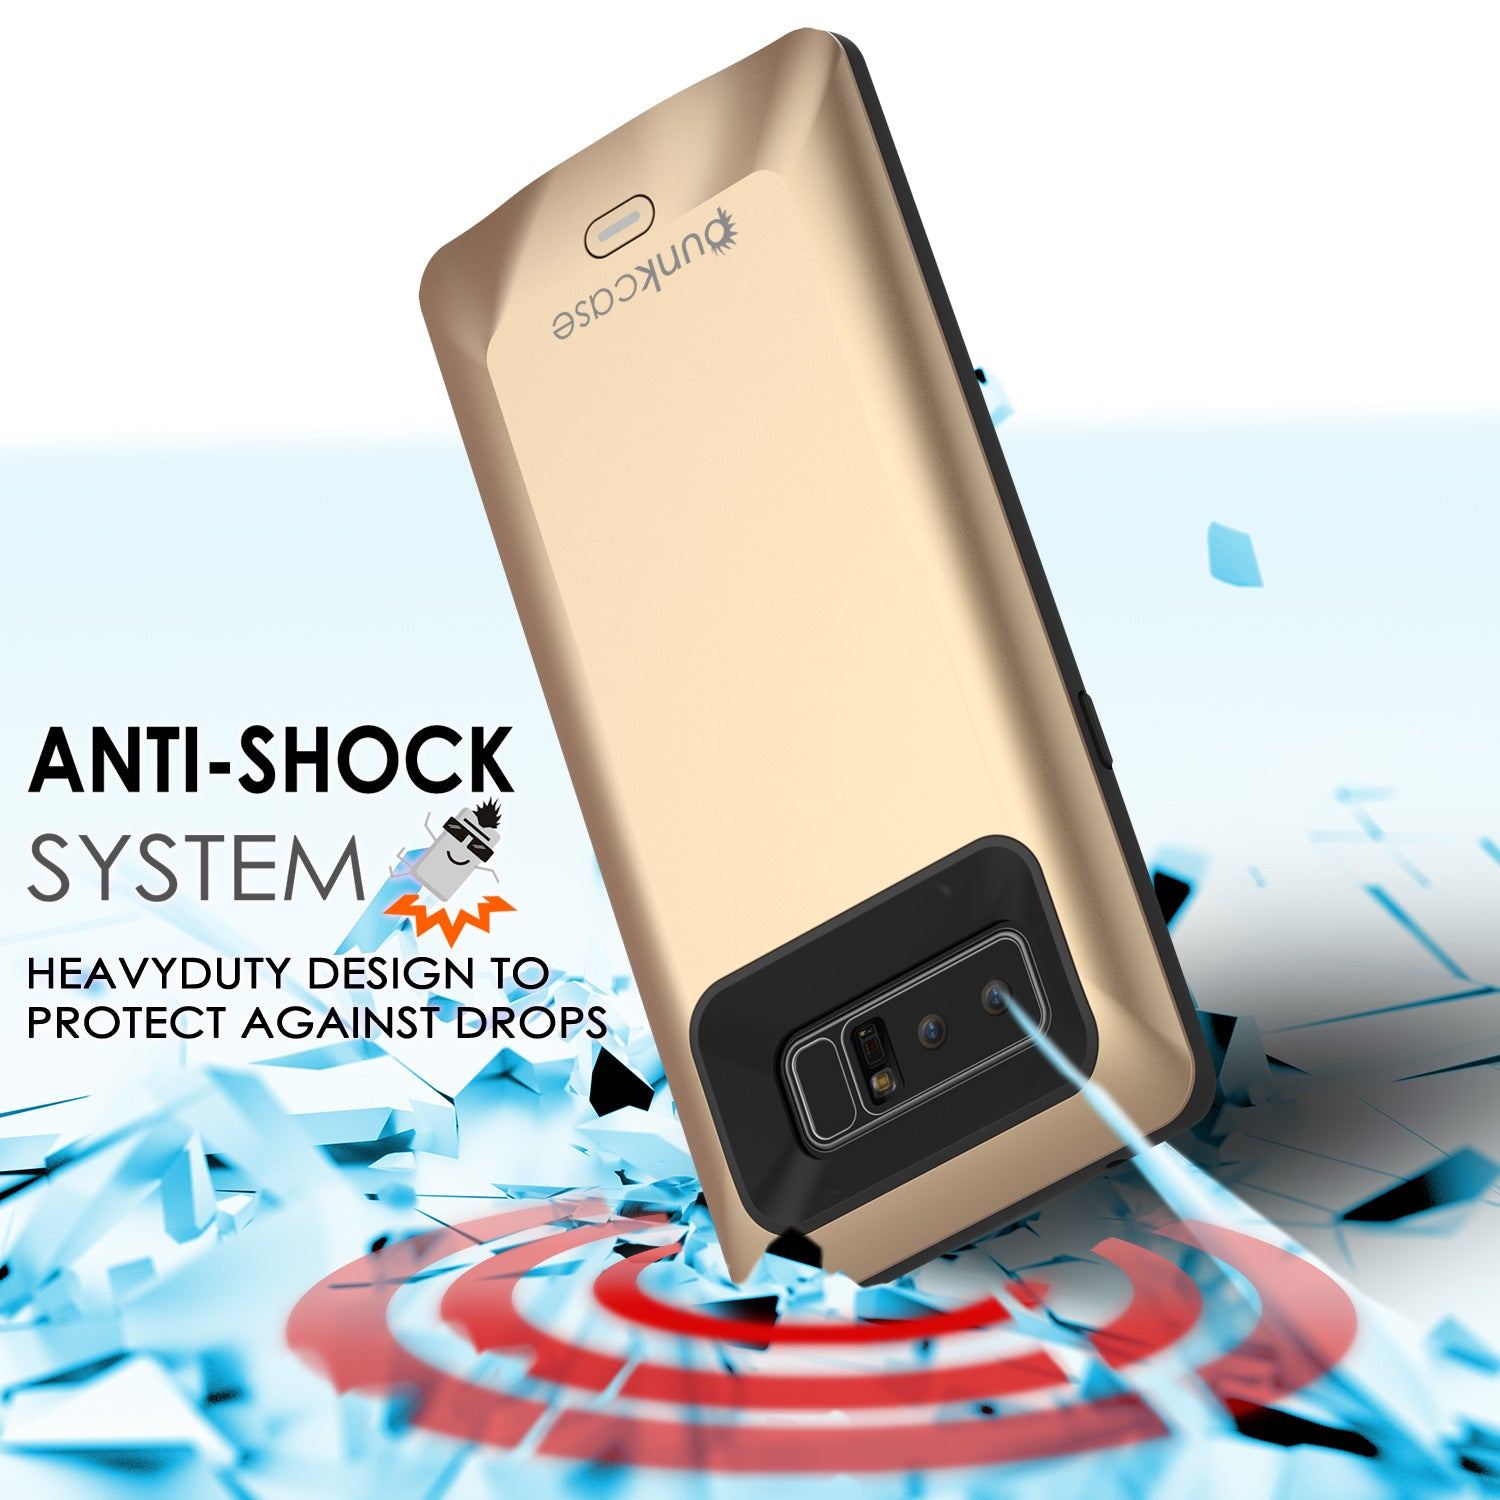 Galaxy Note 8 5000mAH Battery Charger W/ USB Port Slim Case [Gold]